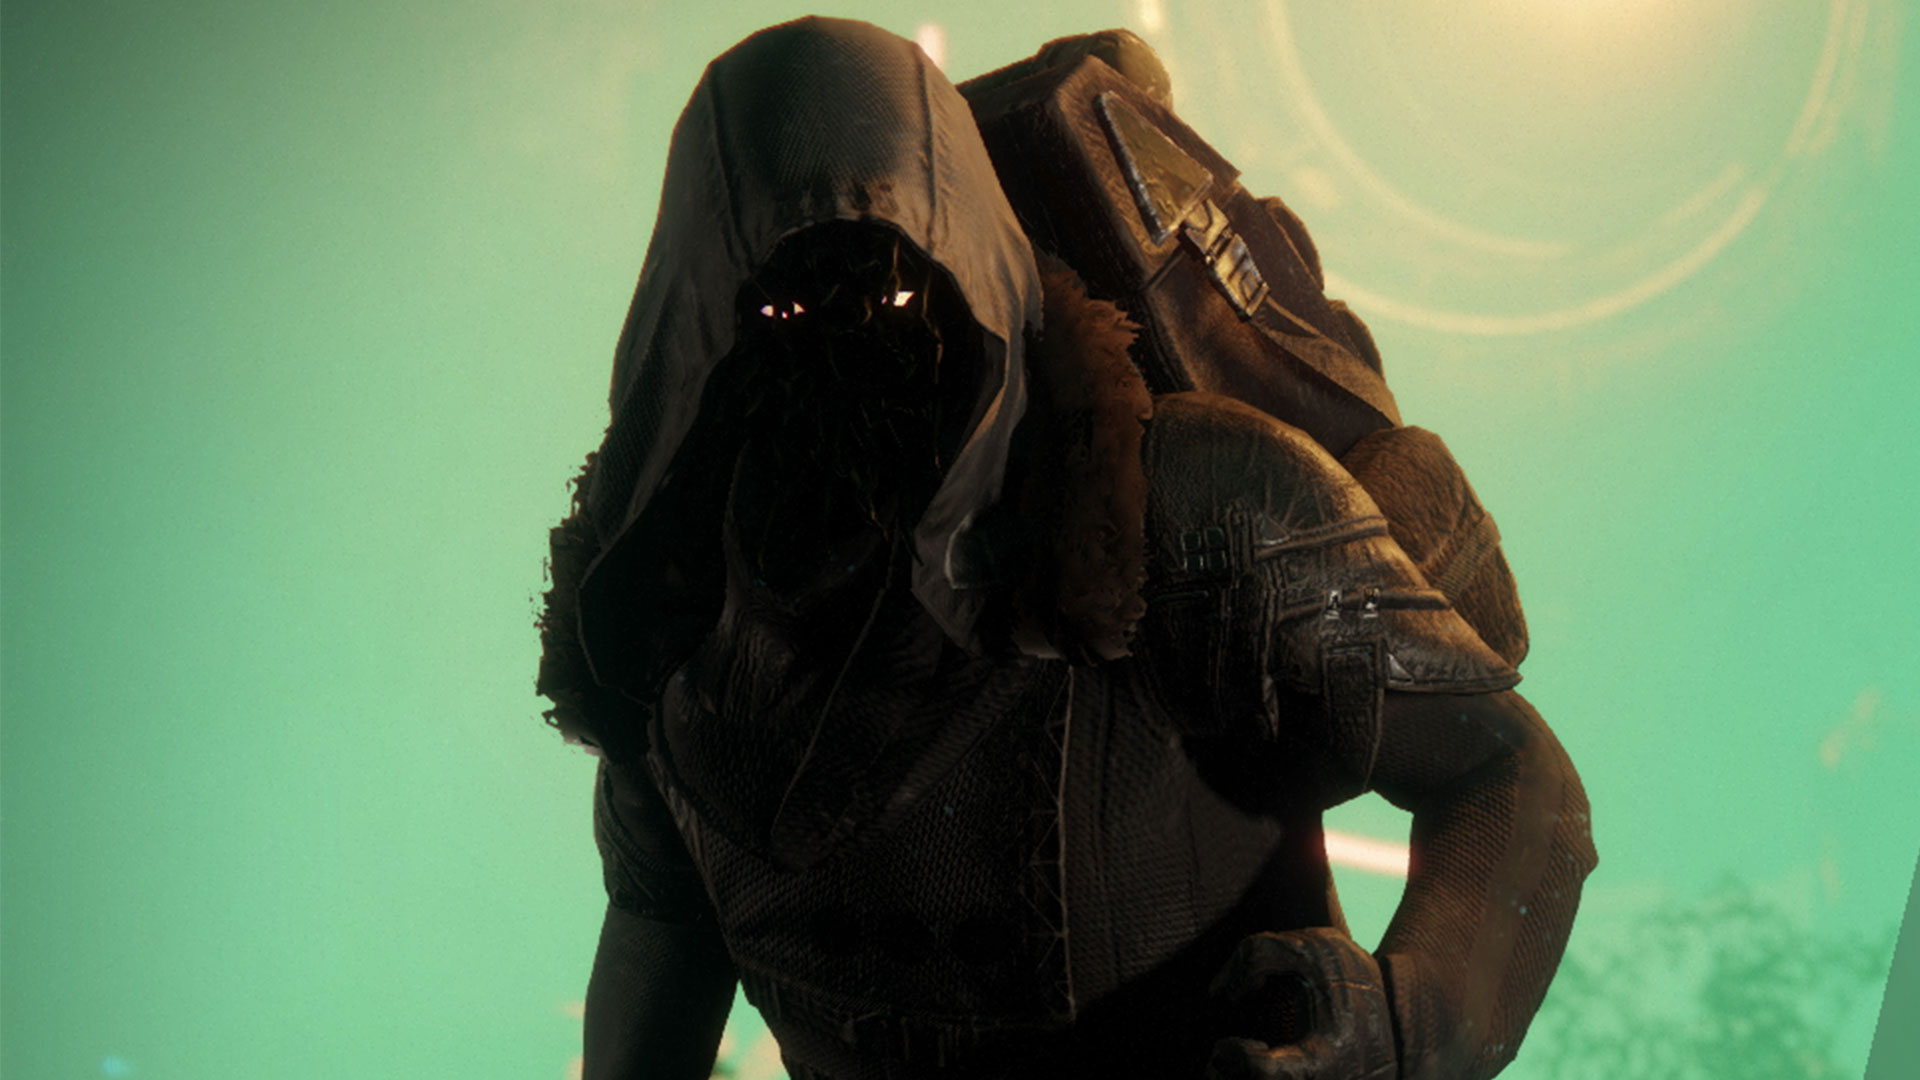 Destiny 2 Xur location and items, Sept. 13-16